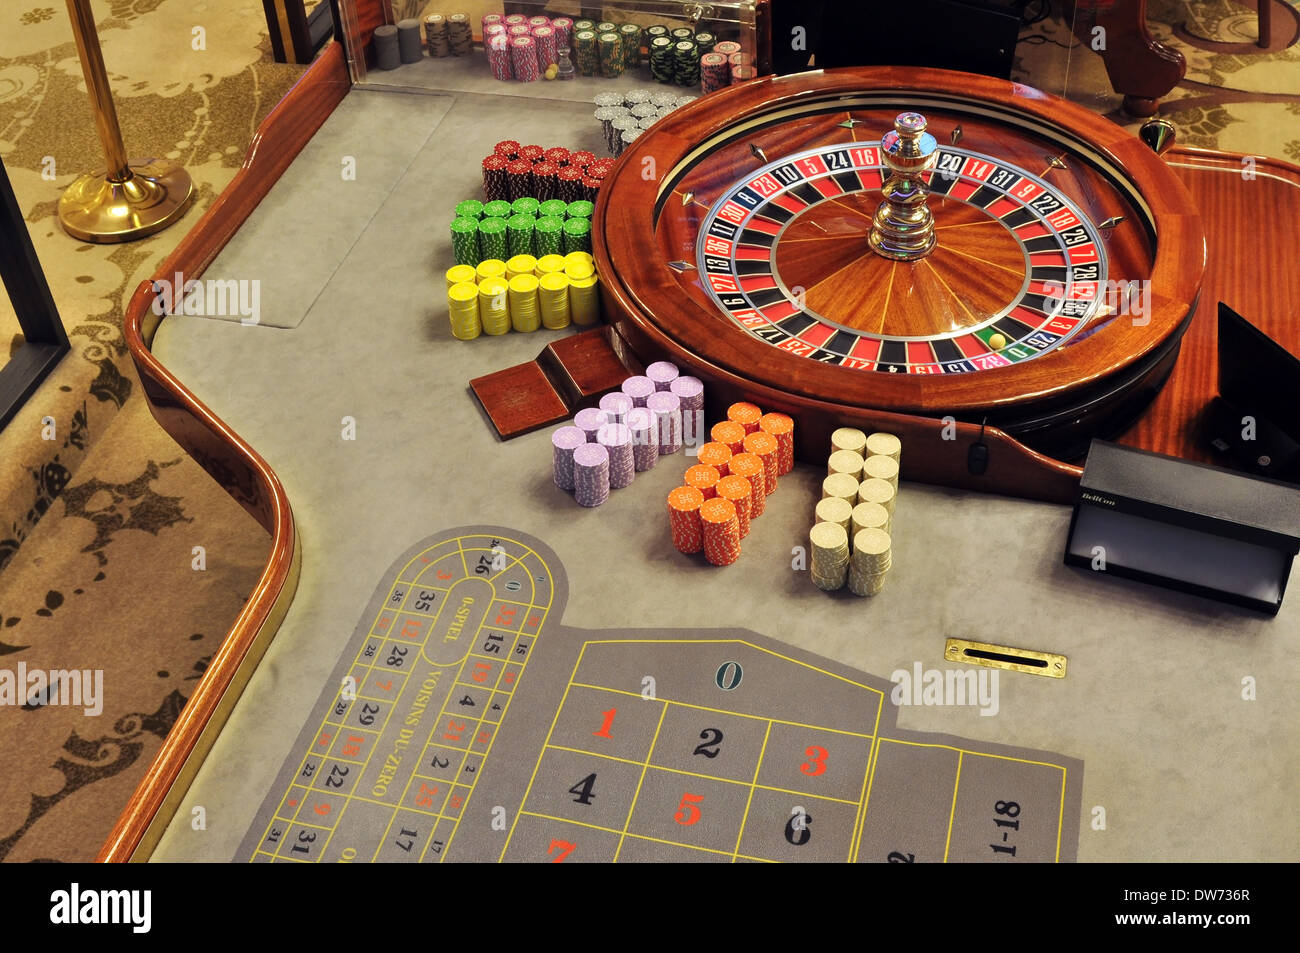 image with a casino roulette wheel with the ball on number zero - Stock Image